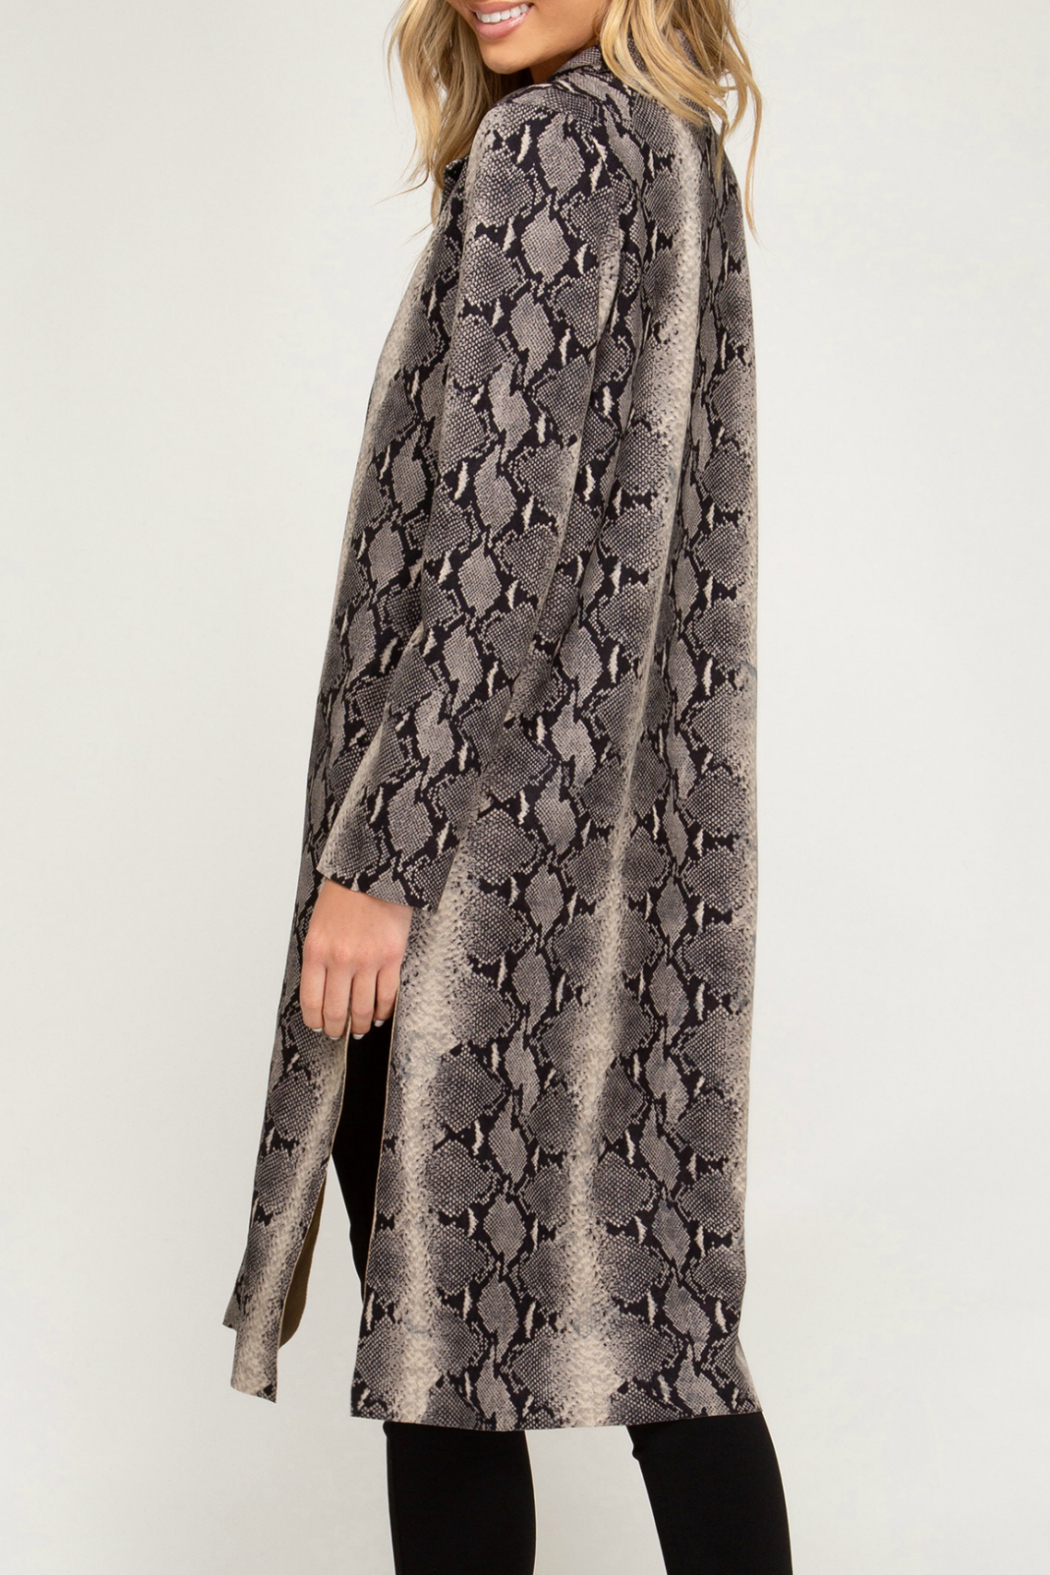 She + Sky Animal Print Suede Duster - Front Full Image